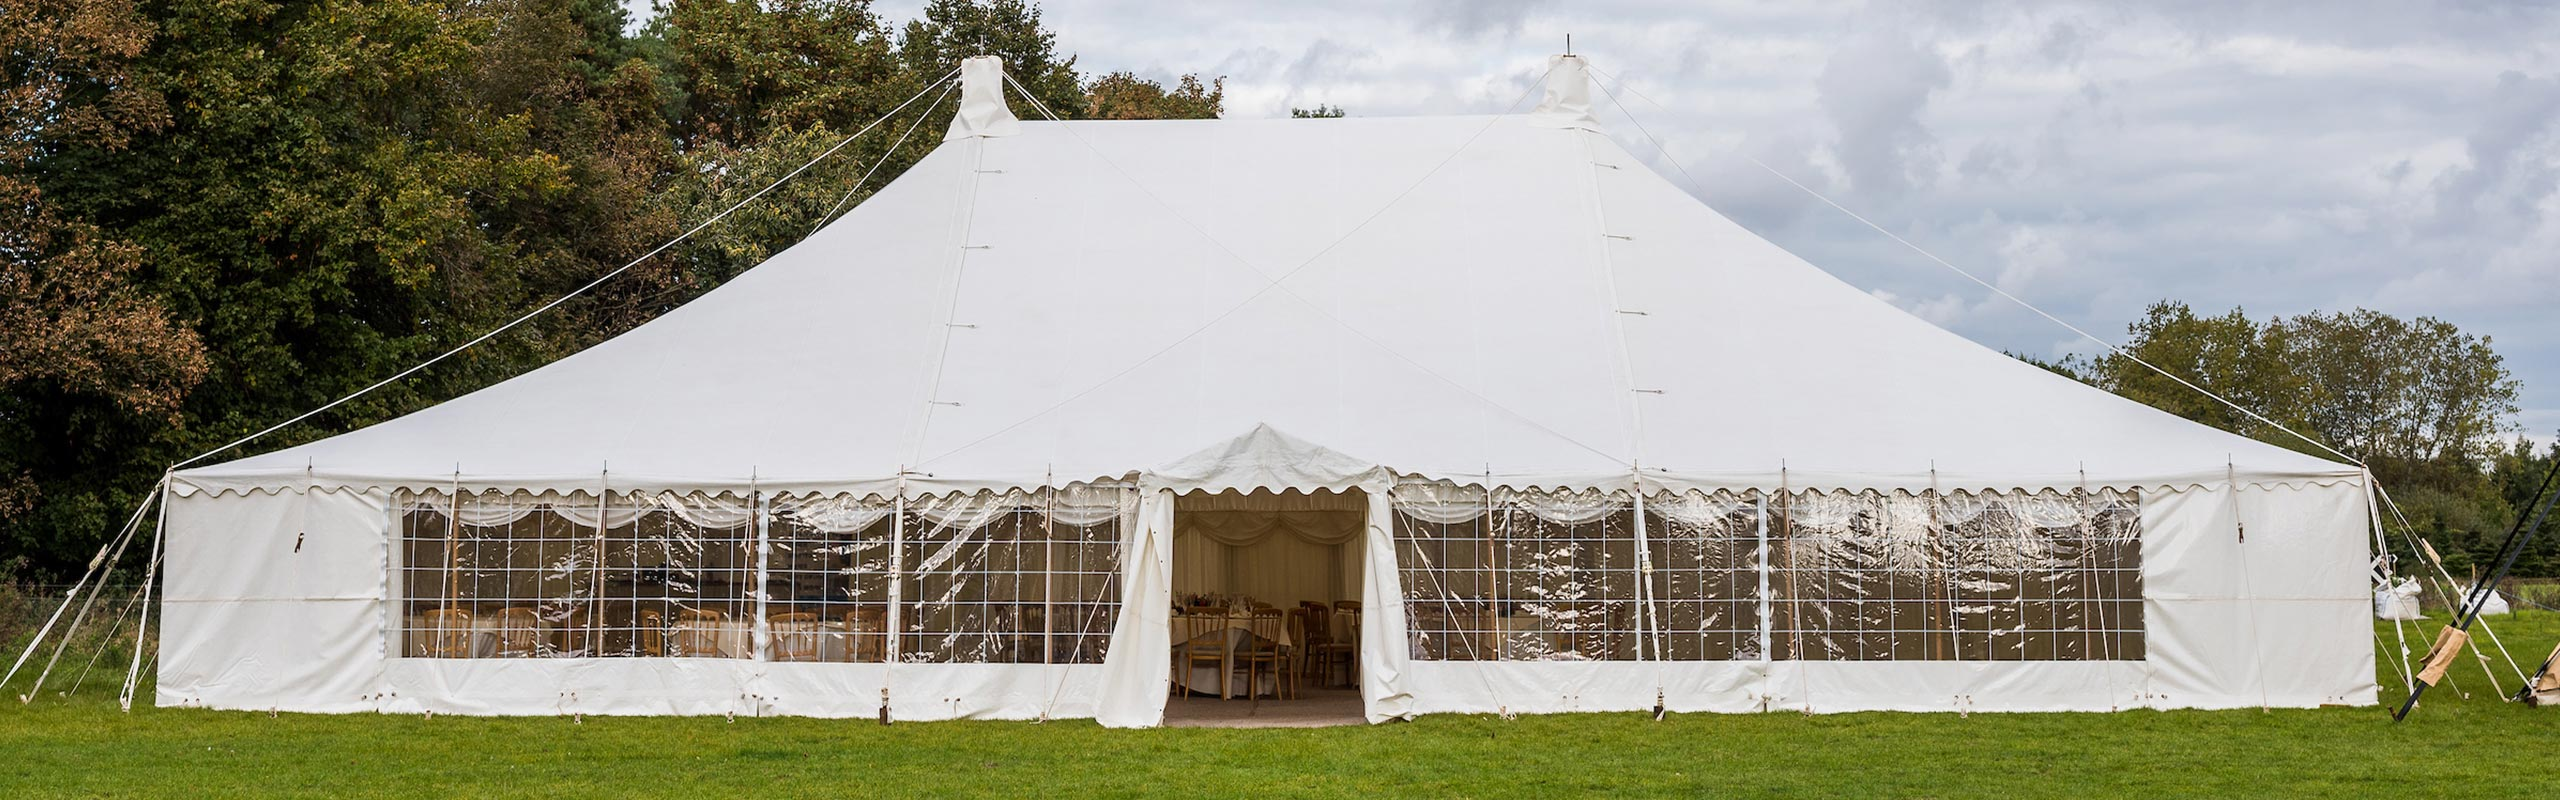 marquee hire norwich prices